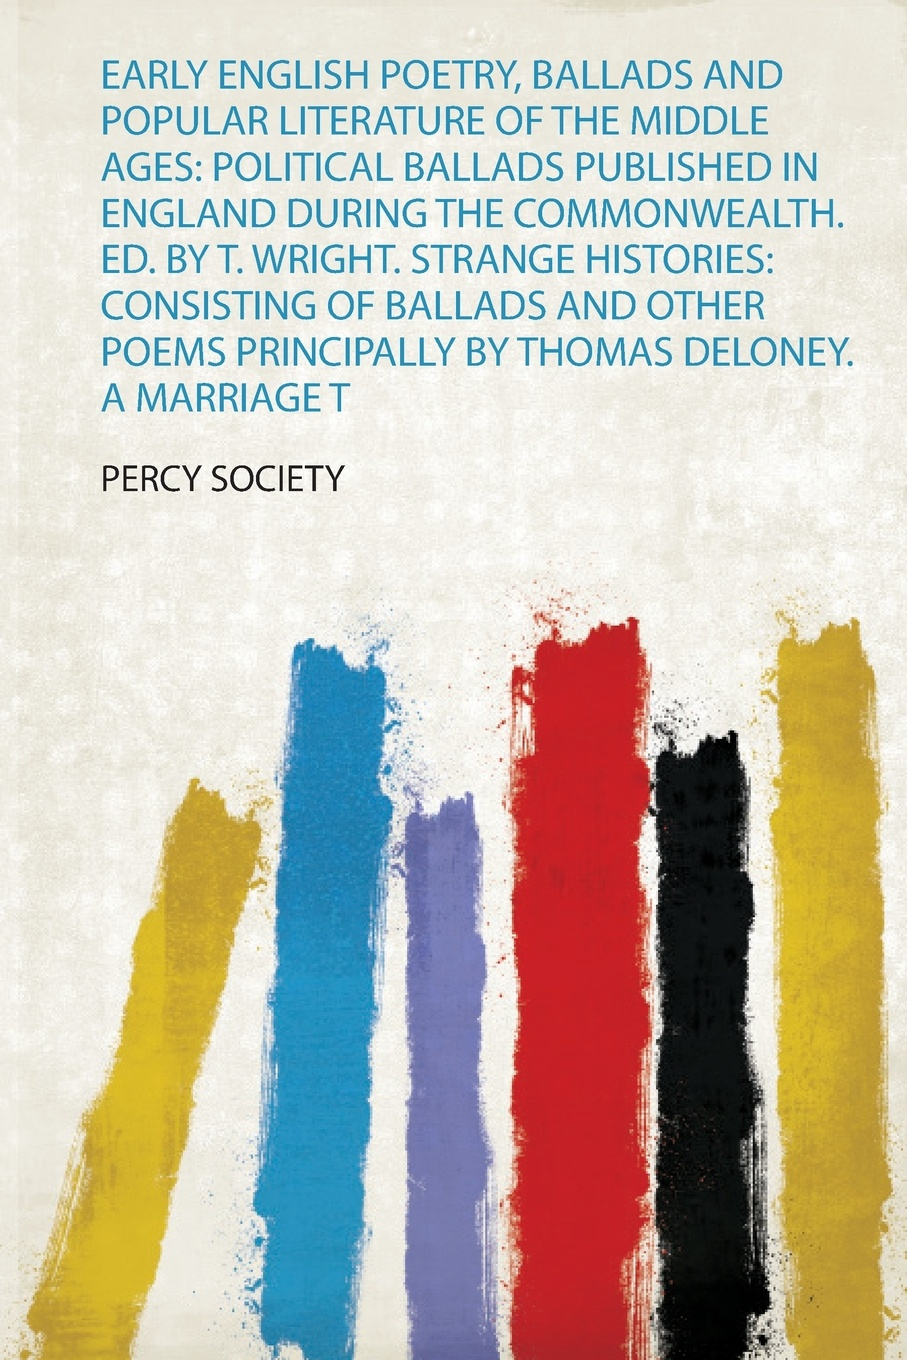 Early English Poetry, Ballads and Popular Literature of the Middle Ages. Political Ballads Published in England During the Commonwealth. Ed. by T. Wright. Strange Histories: Consisting of Ballads and Other Poems Principally by Thomas Deloney. a Ma...